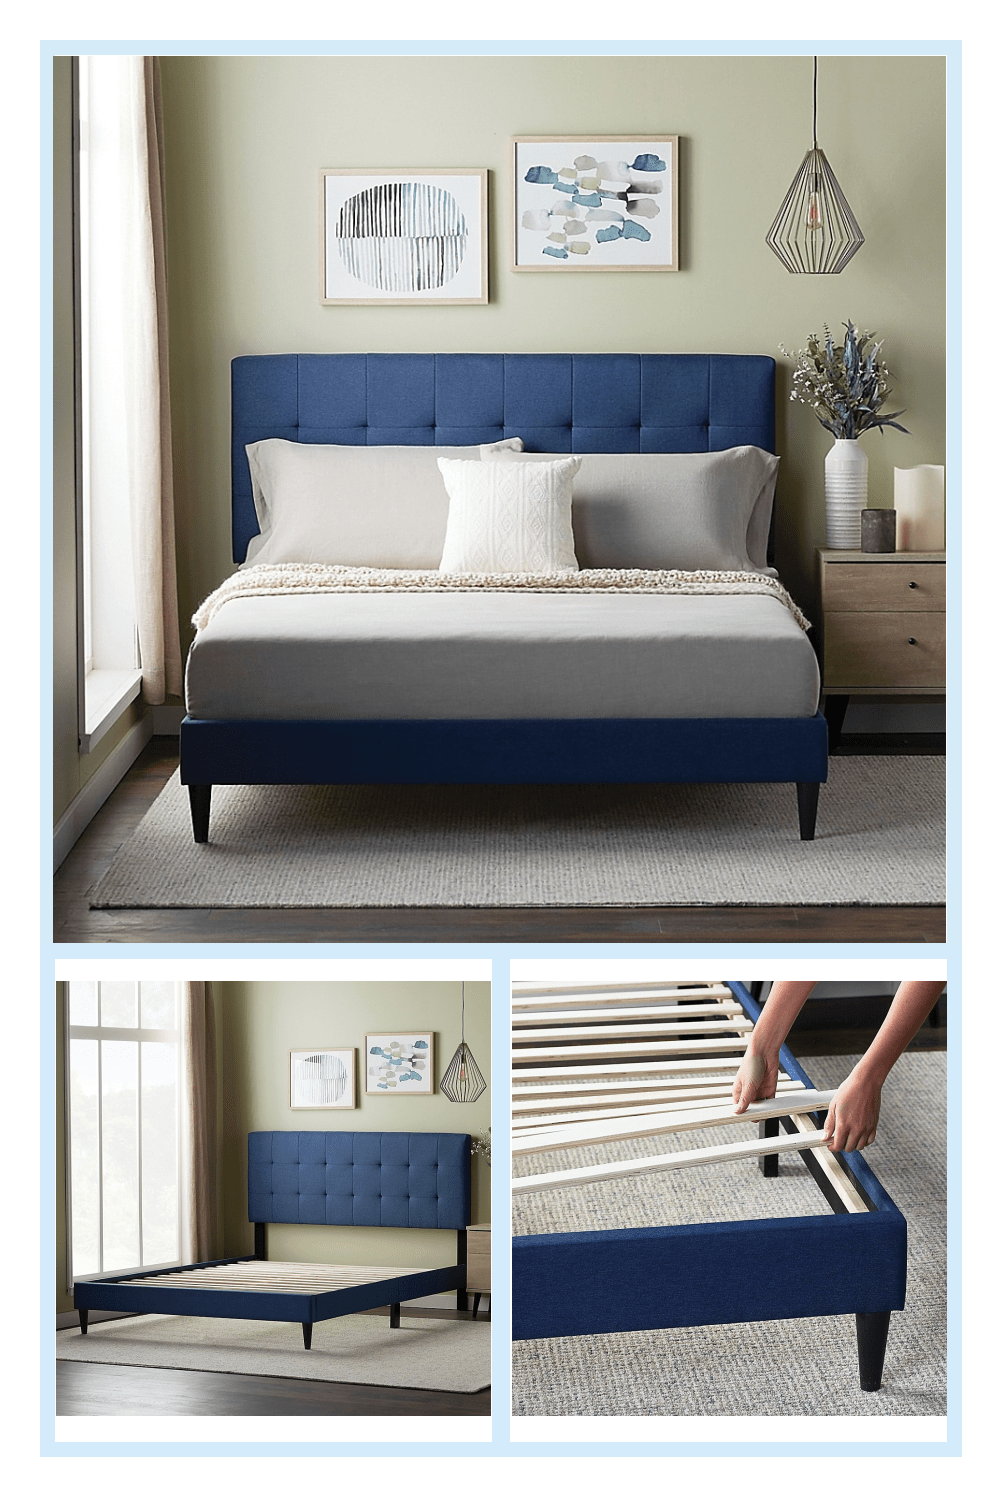 twin xl headboard and frame on dream collection by lucid platform bed frame with square tufted headboard bed bath beyond platform bed frame twin platform bed frame king platform bed frame pinterest